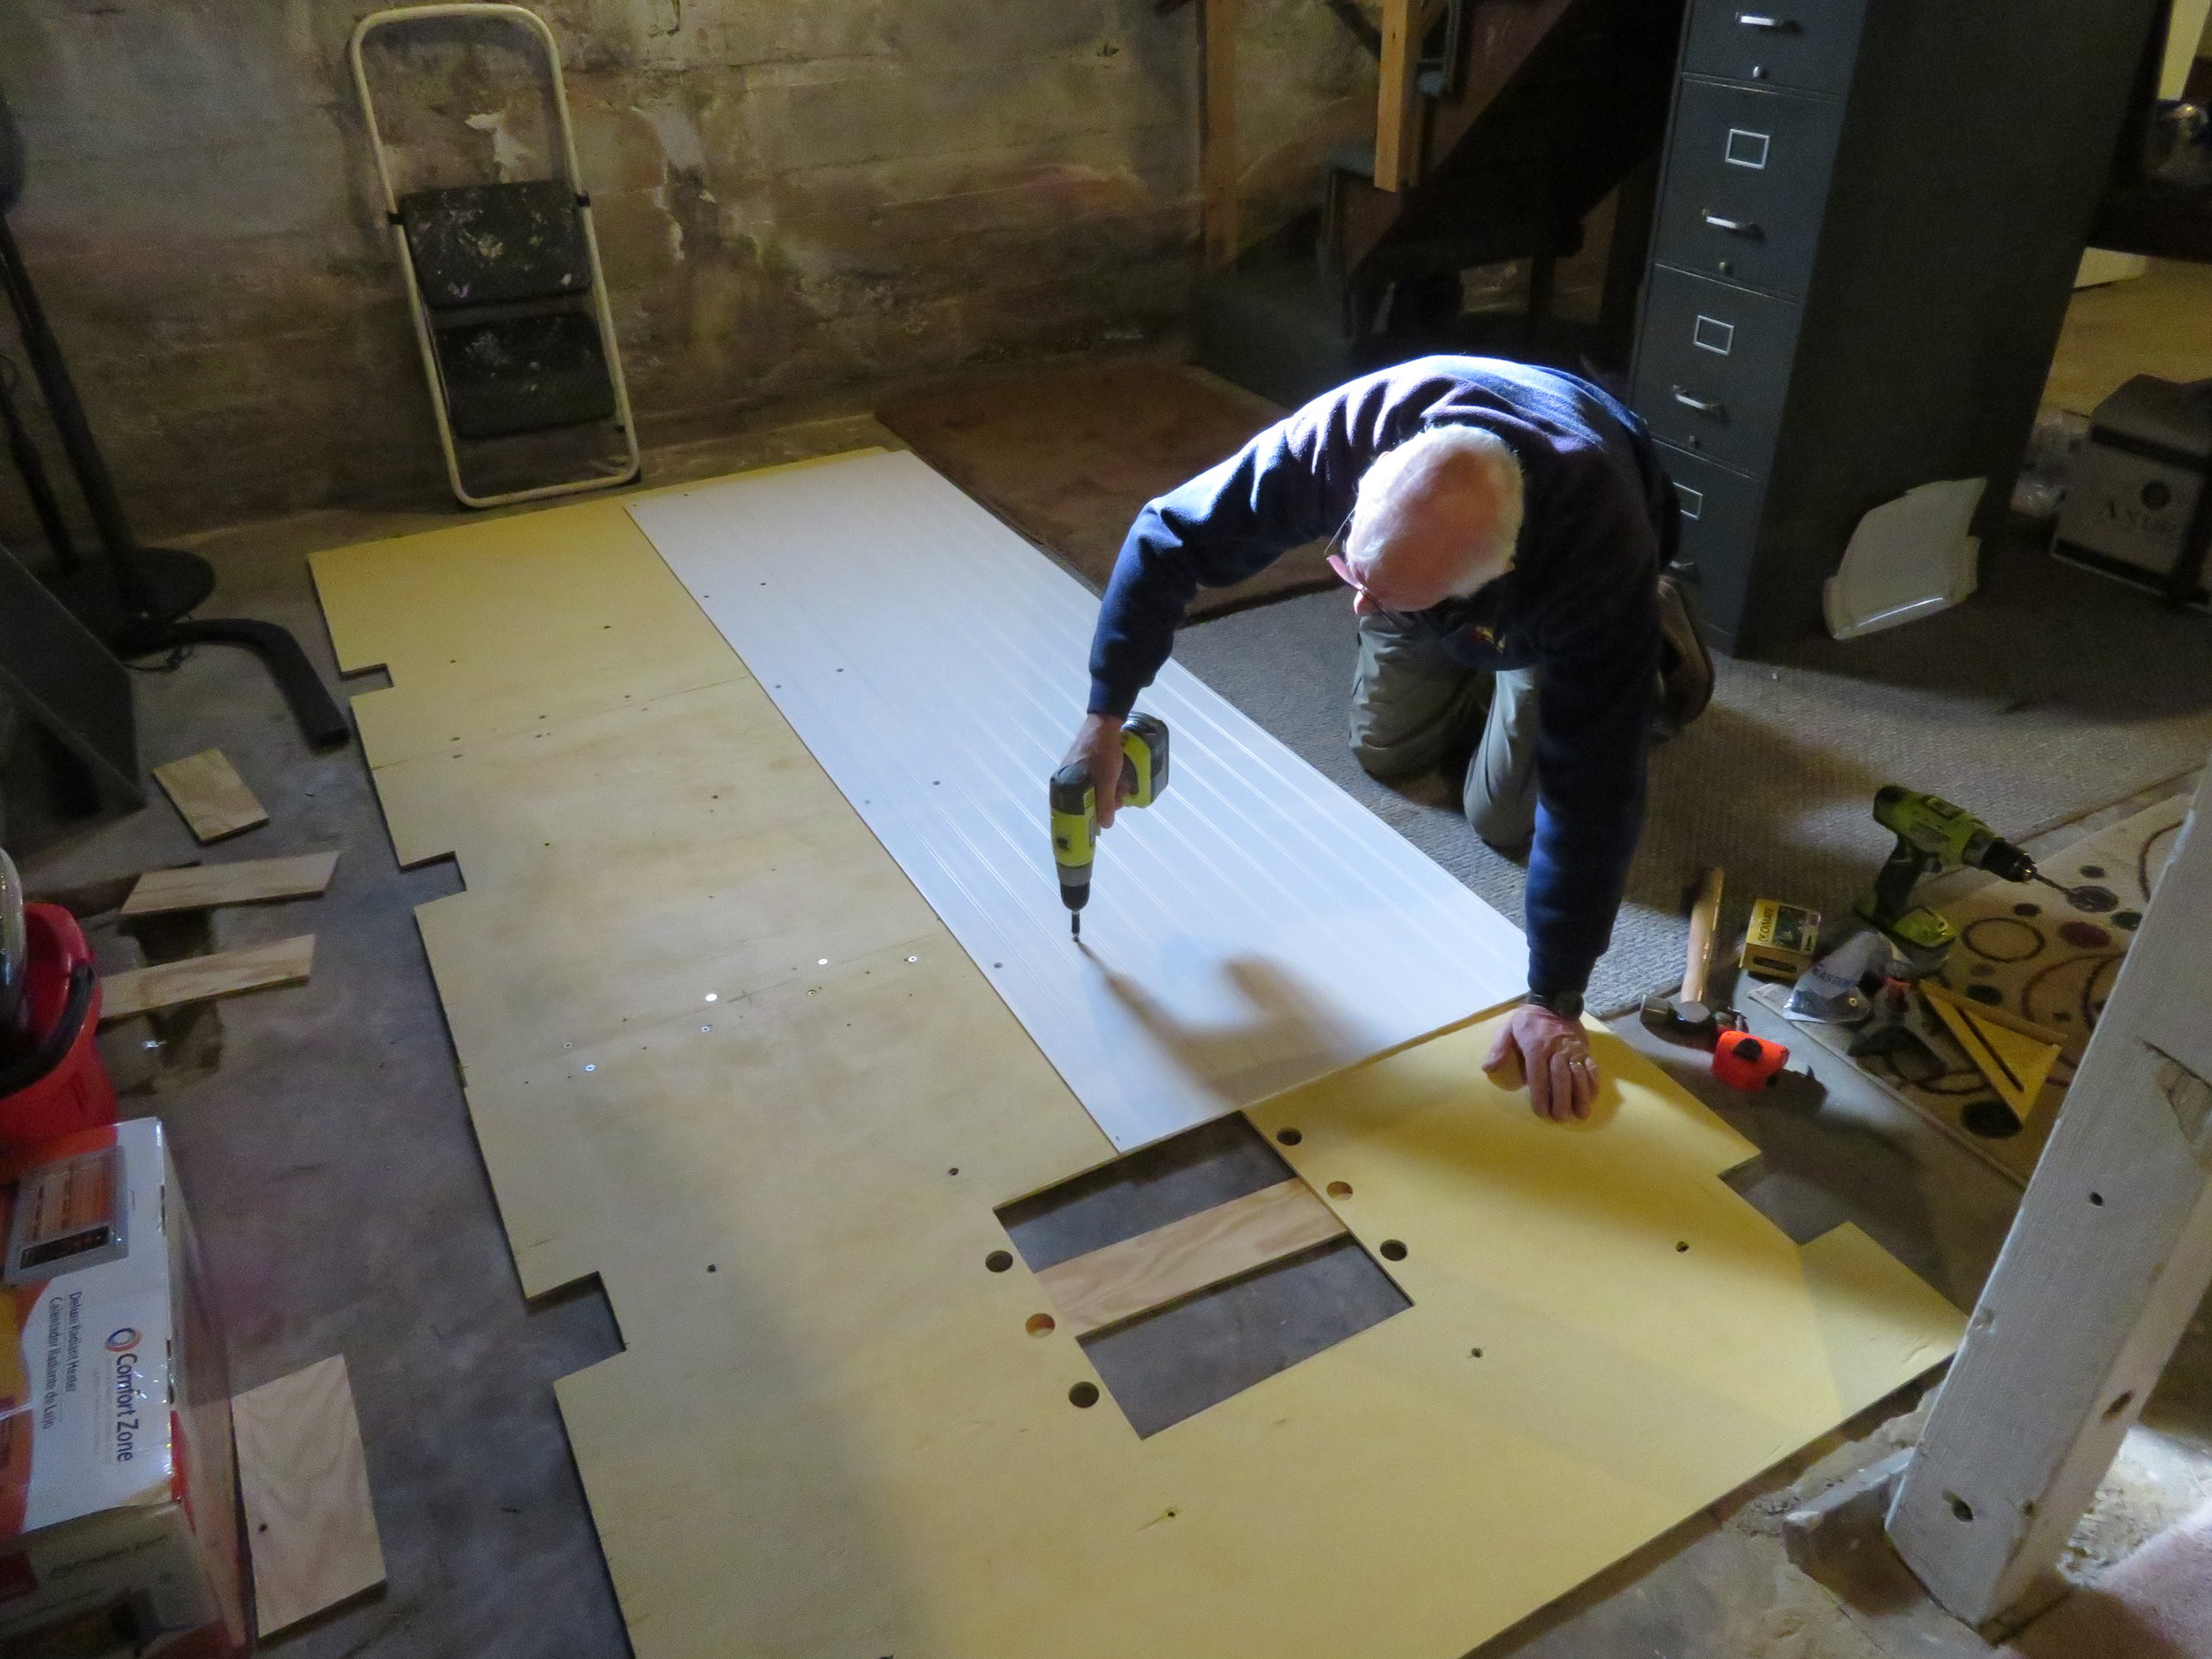 Attaching the planks